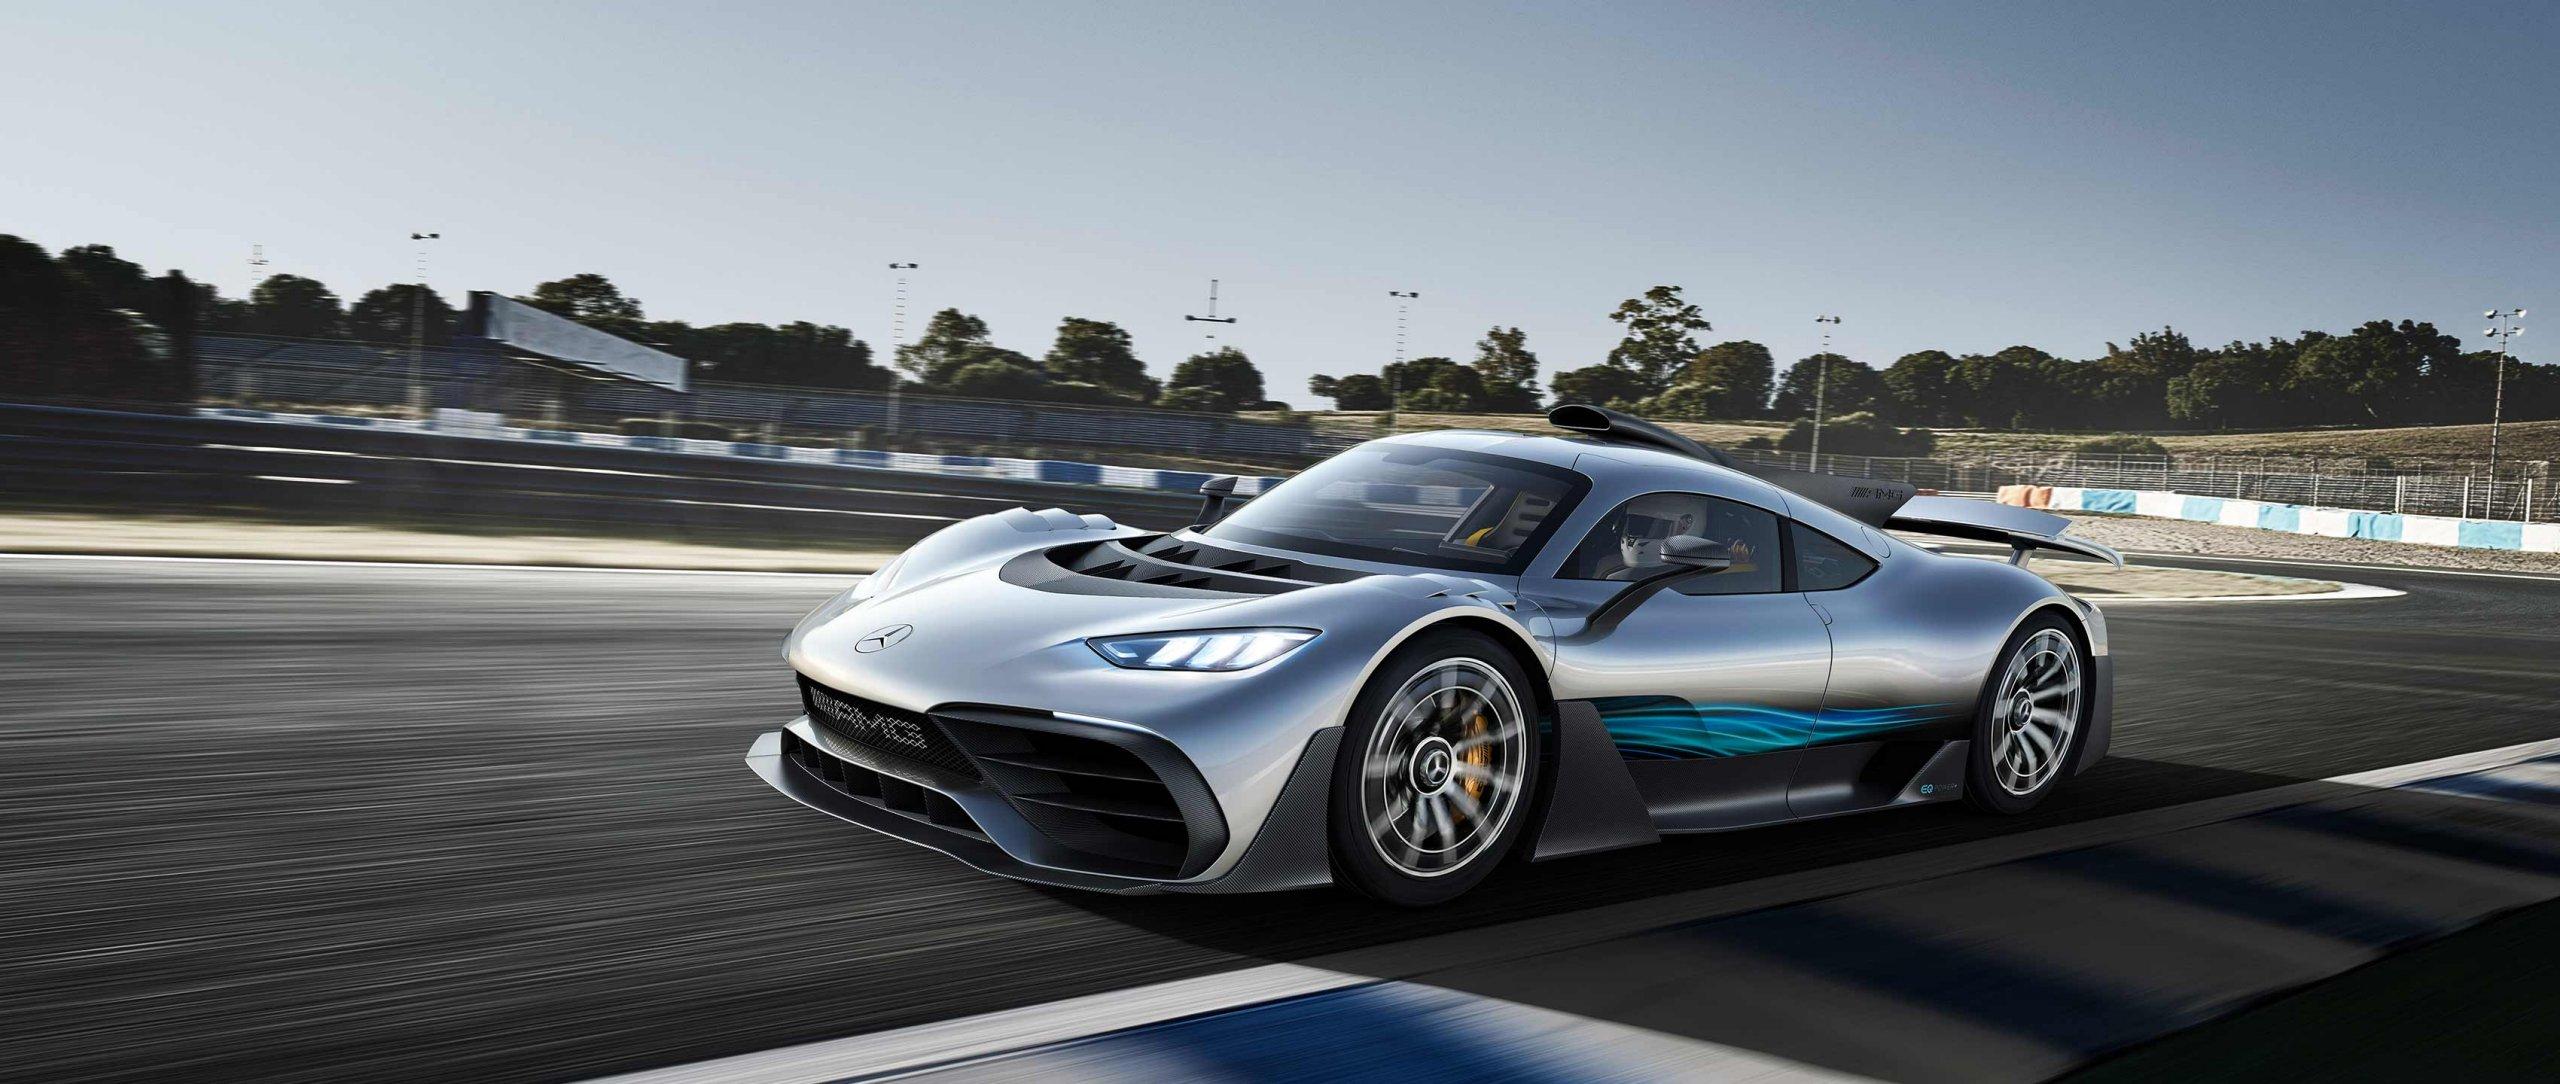 The Mercedes-AMG Project ONE combines outstanding race track performance and day-to-day suitable Formula 1 hybrid technology with exemplary efficiency.